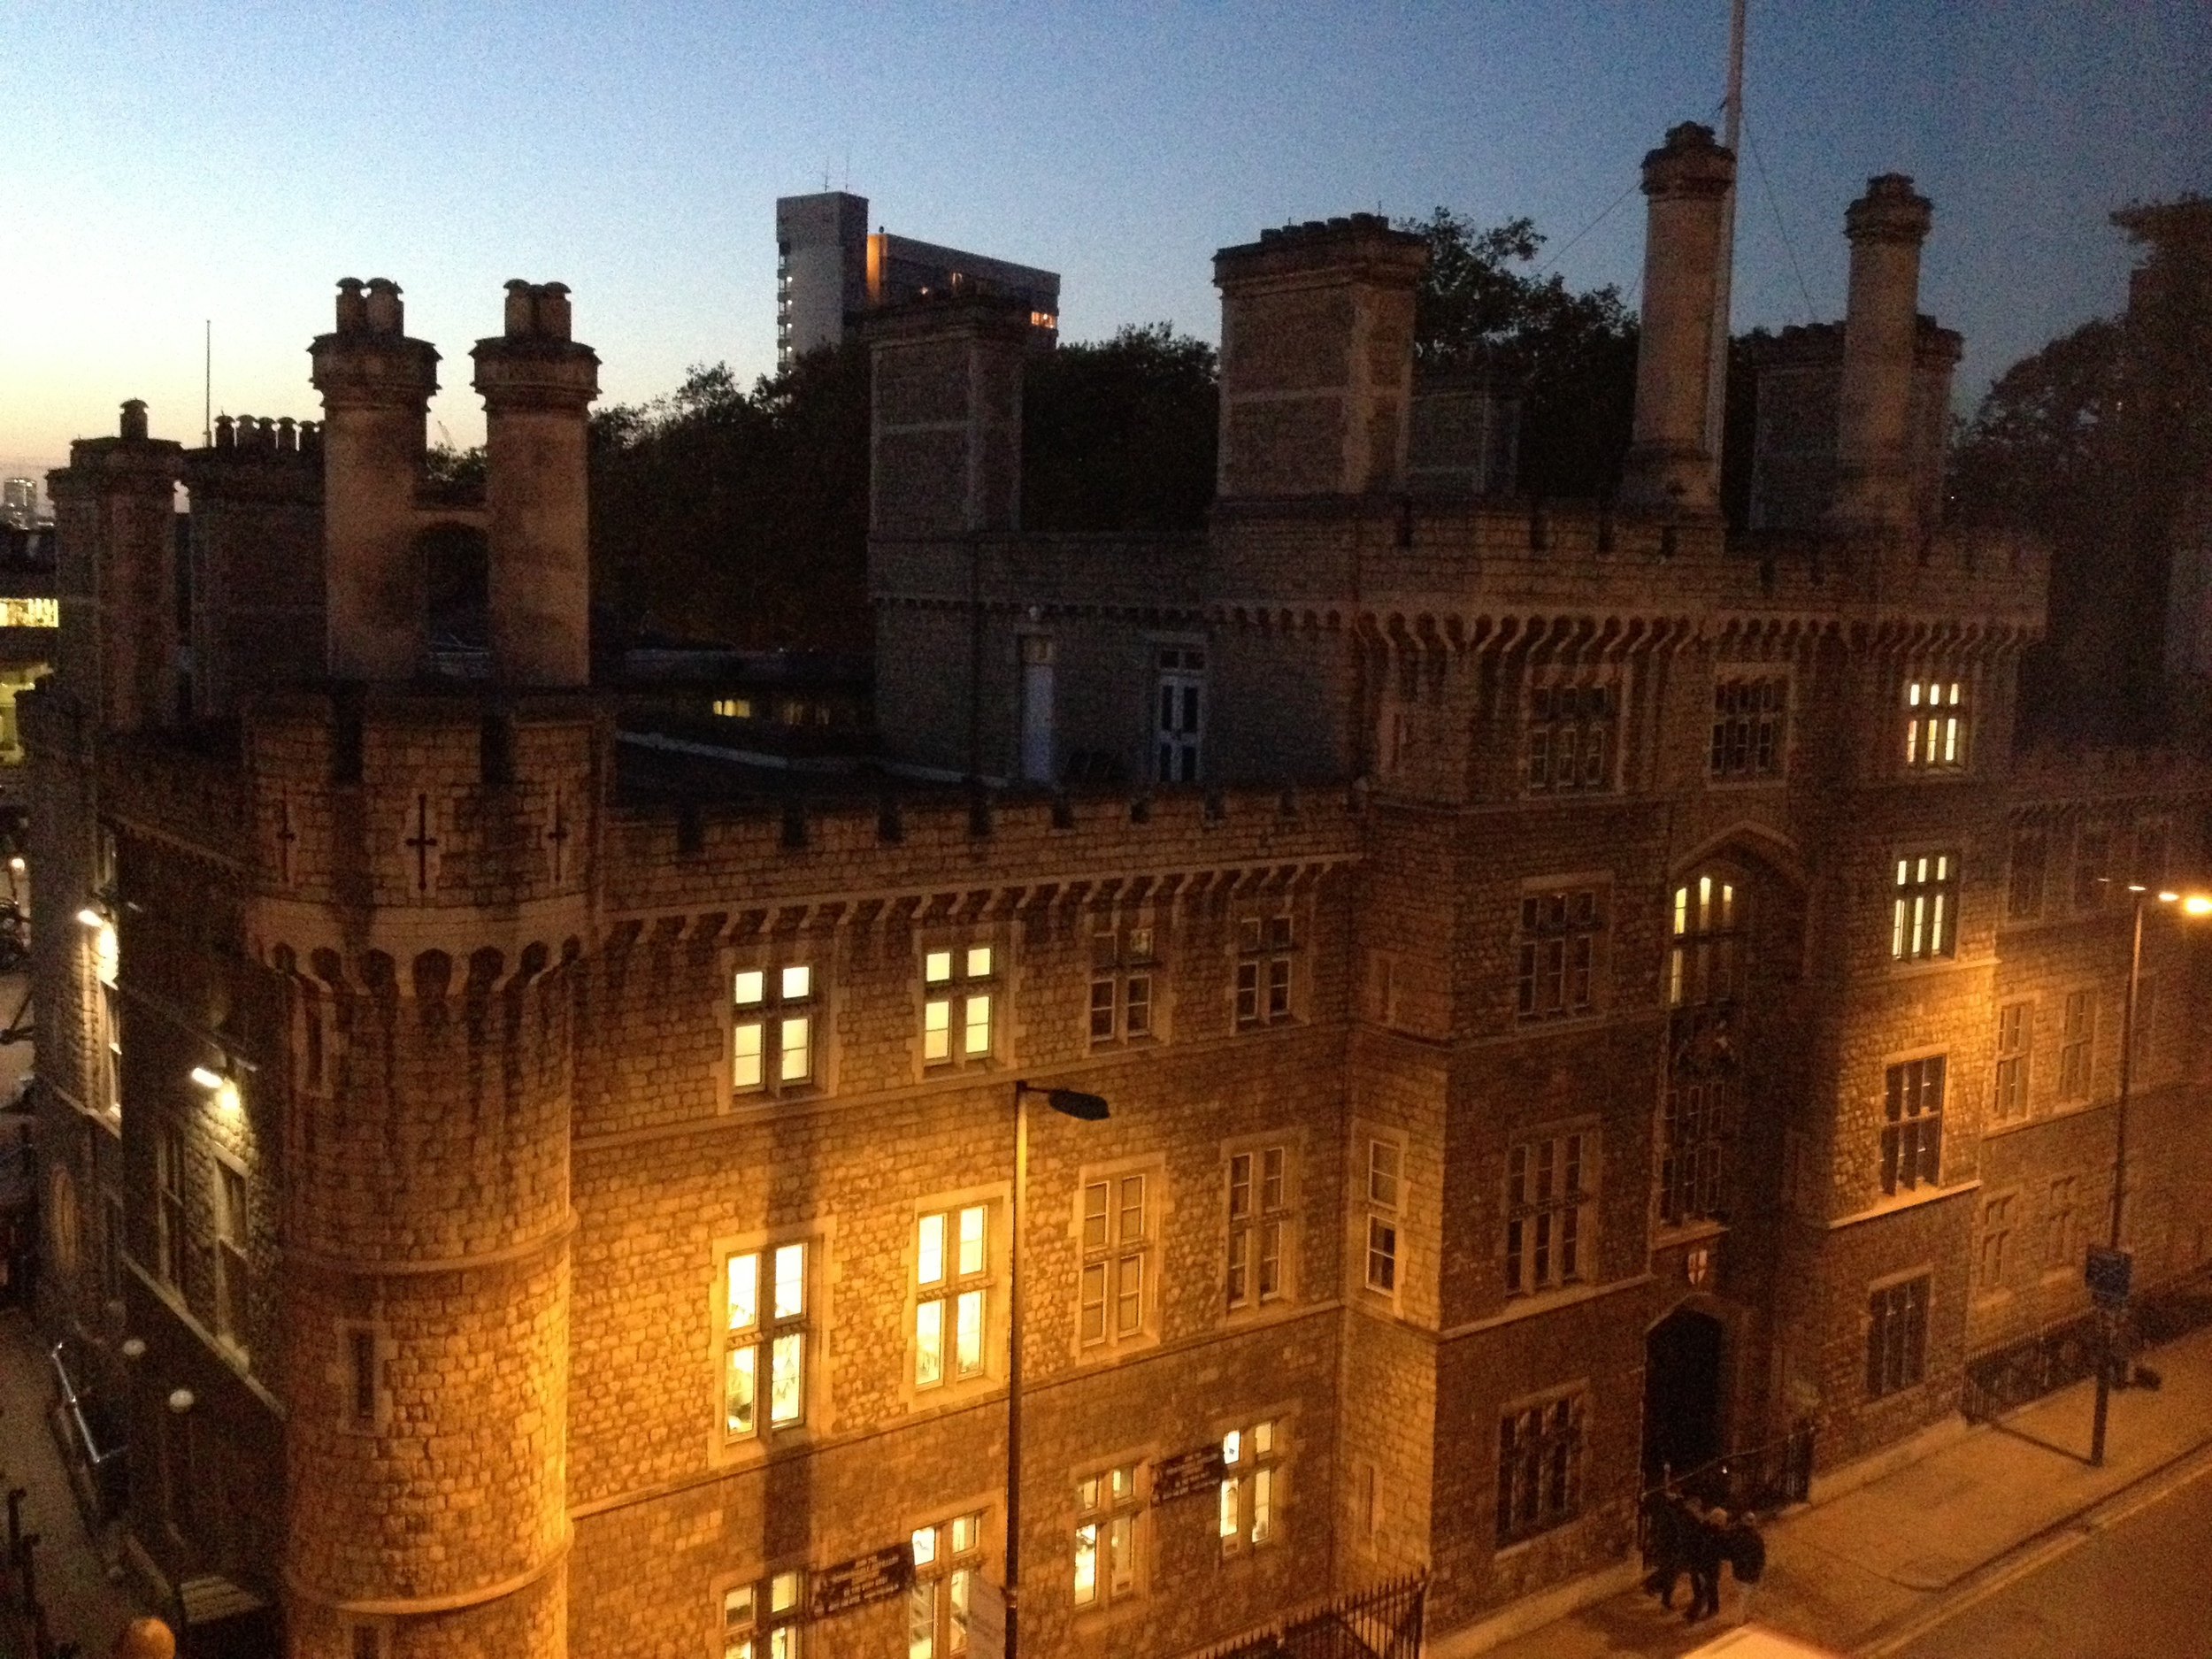 The view from my Travelodge